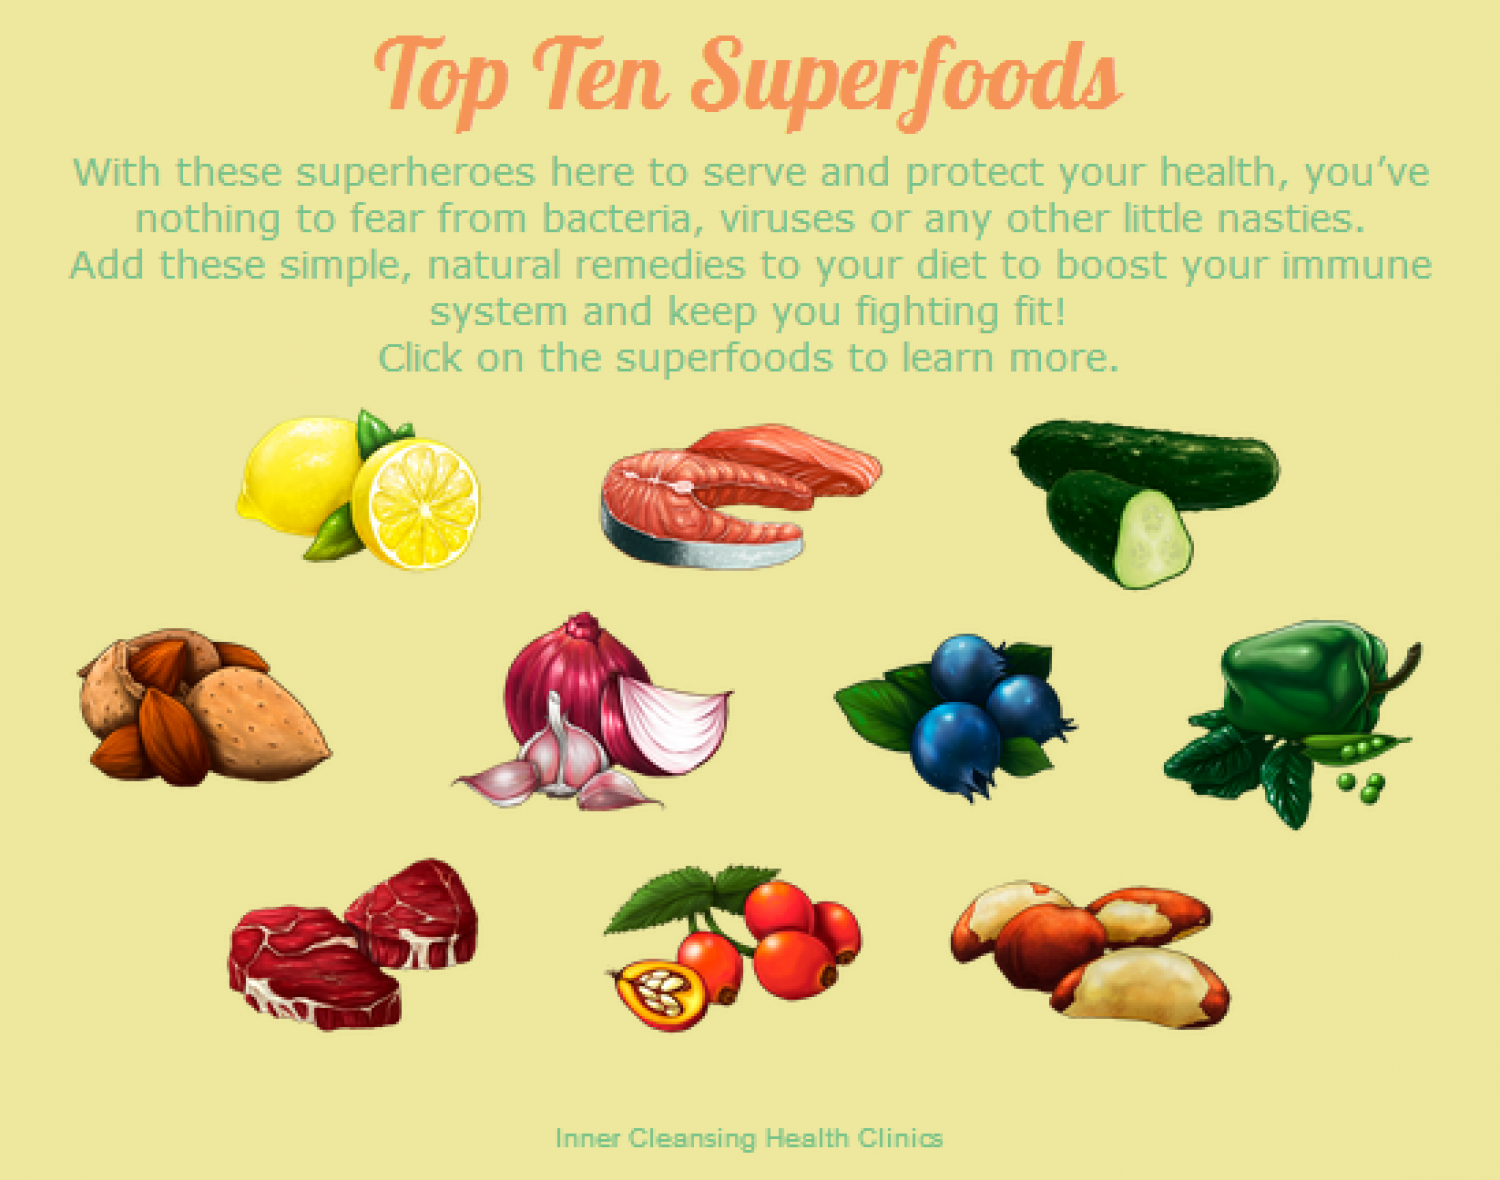 Top Ten Superfoods Infographic